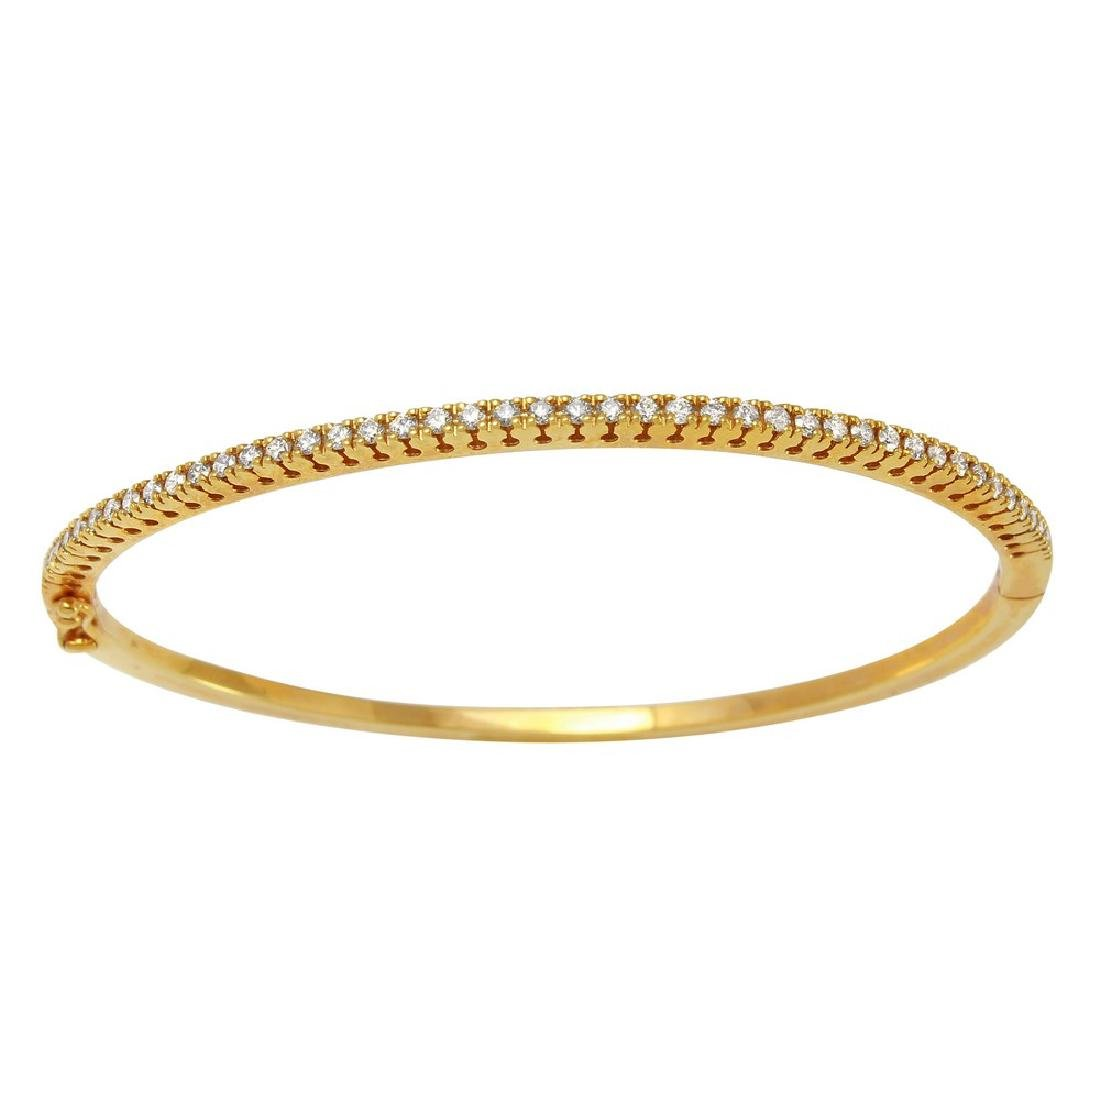 0.84CTW Diamond Bangle Bracelet in 14K Yellow Gold